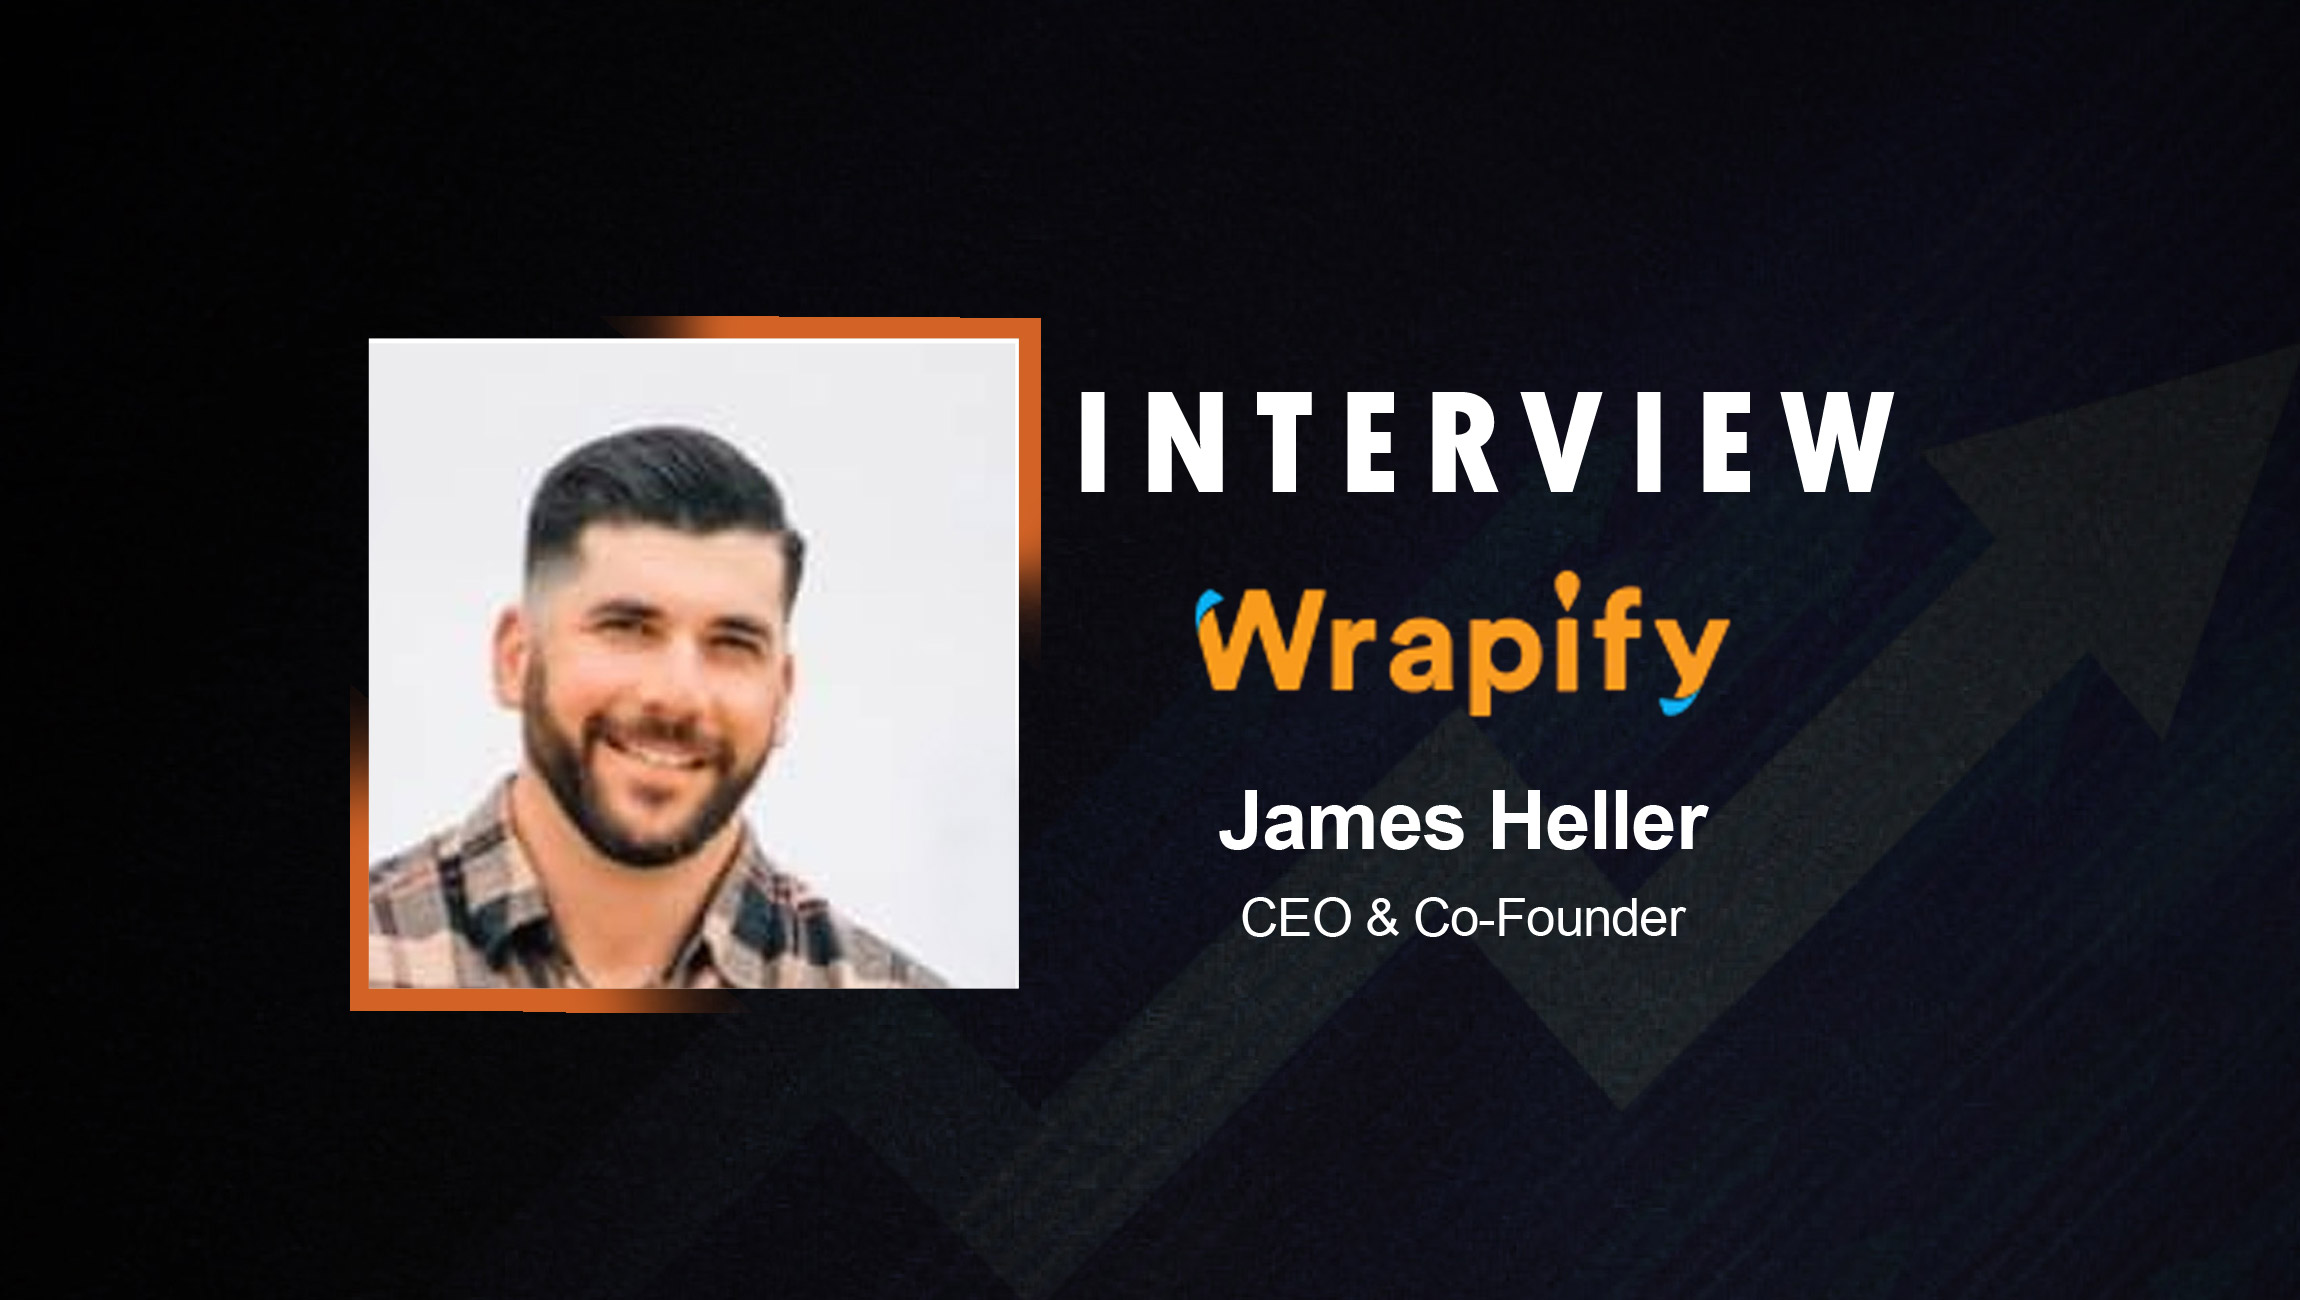 SalesTechStar Interview with James Heller, CEO and Co-Founder of Wrapify